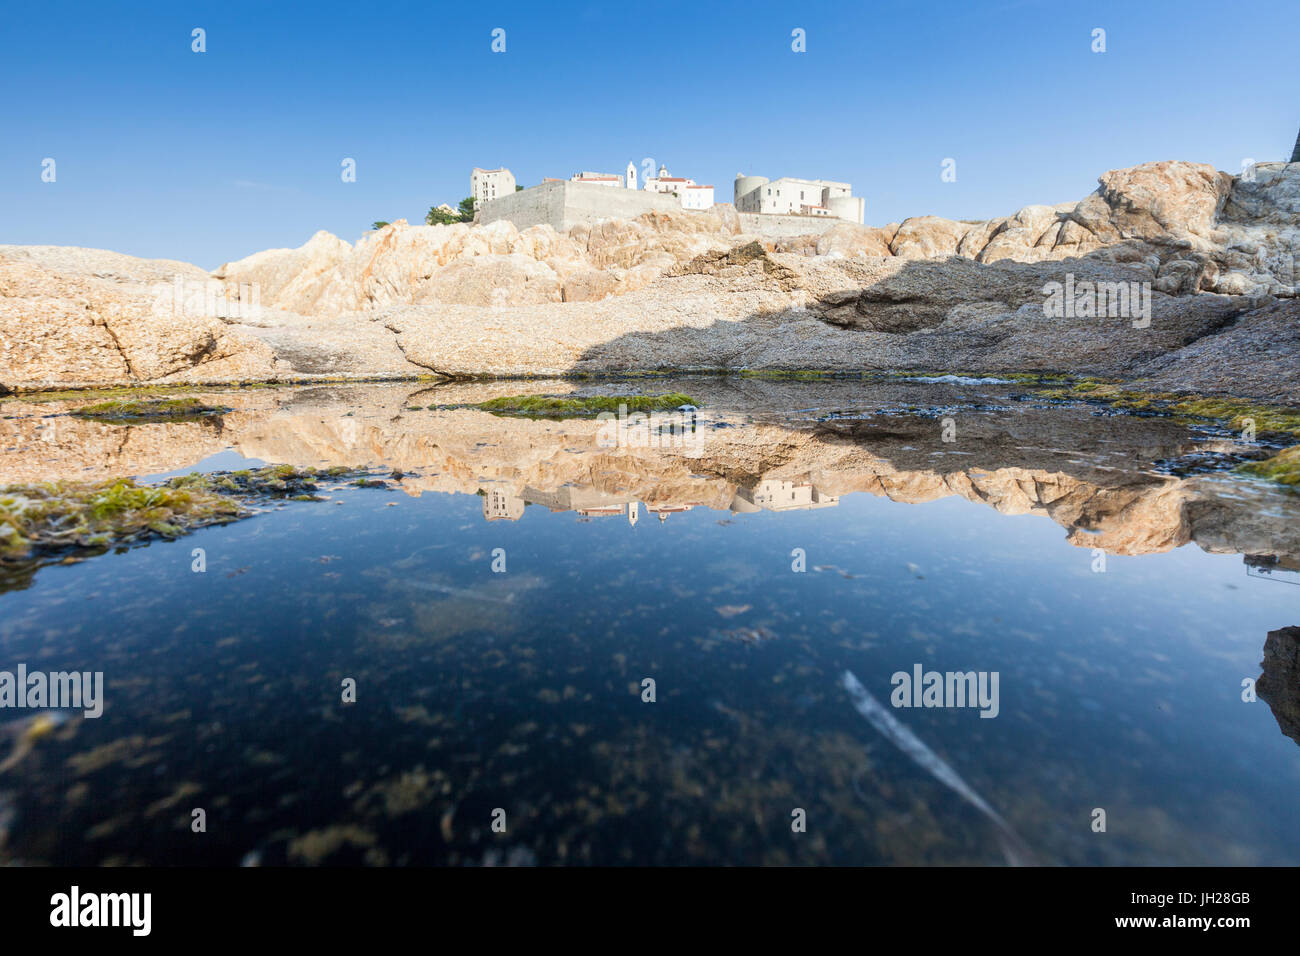 The ancient fortified citadel reflected in the blue sea, Calvi, Balagne Region, Corsica, France, Mediterranean, - Stock Image